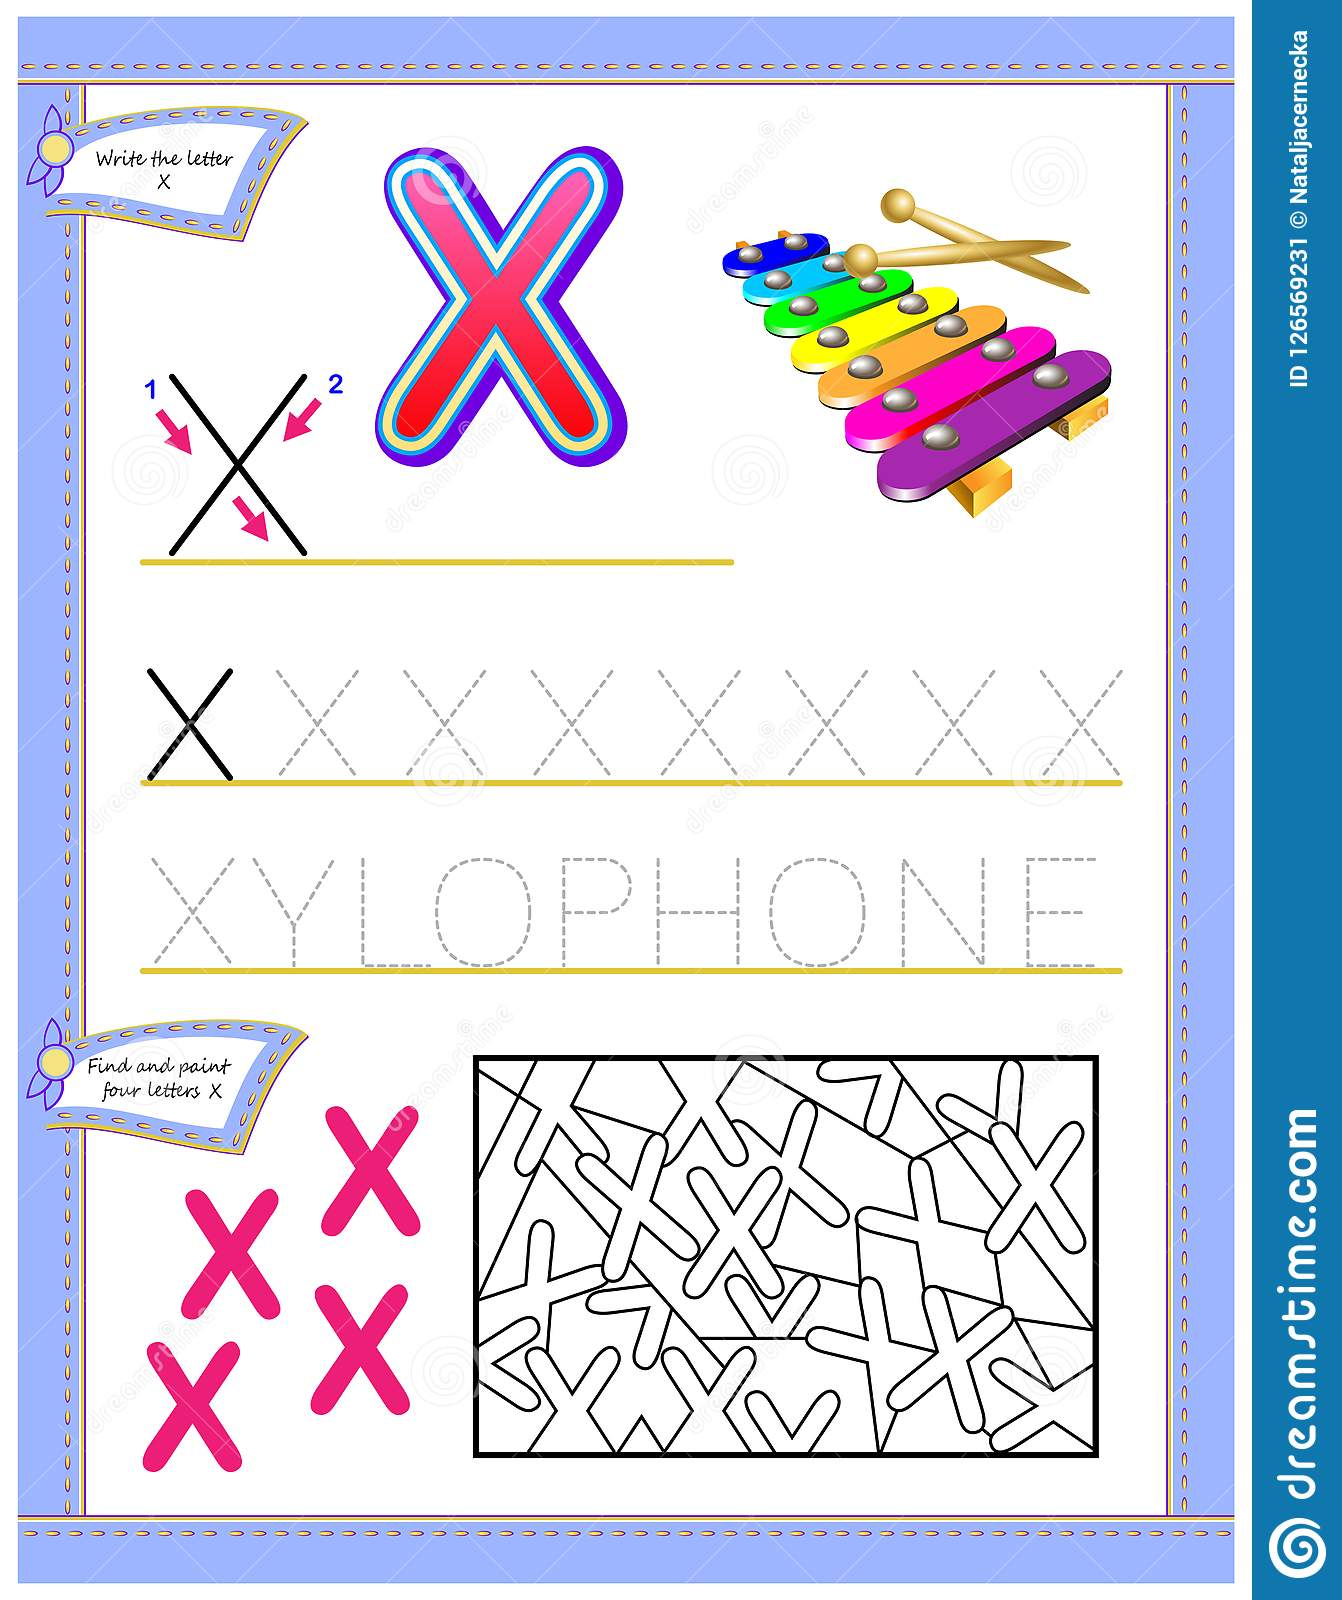 Worksheet For Kids With Letter X For Study English